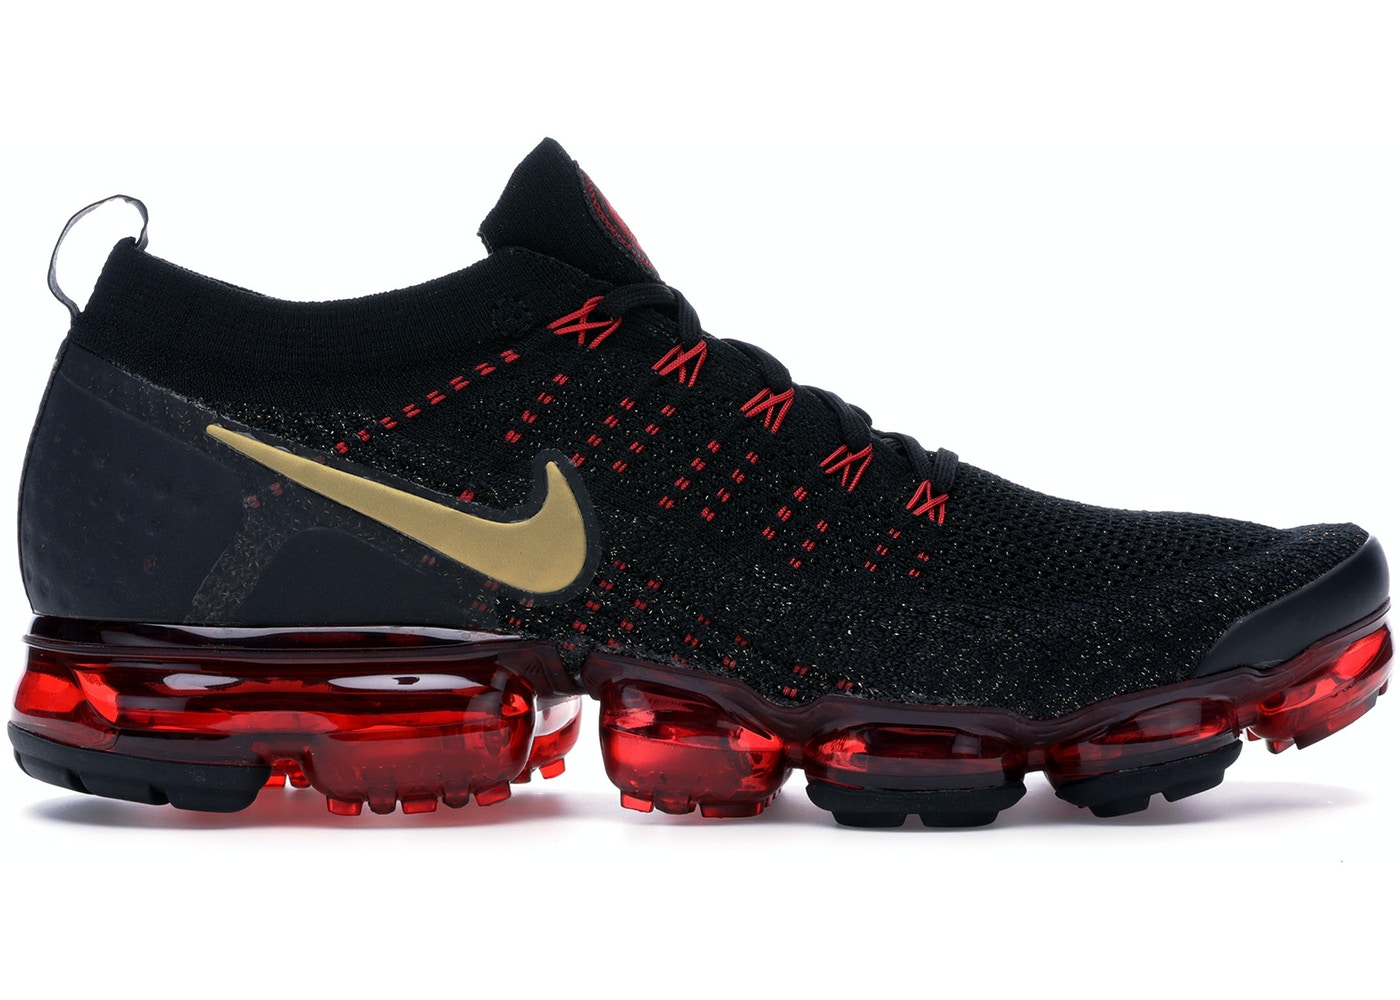 c04c9d40cc6 Buy Nike Air Max VaporMax Shoes & Deadstock Sneakers